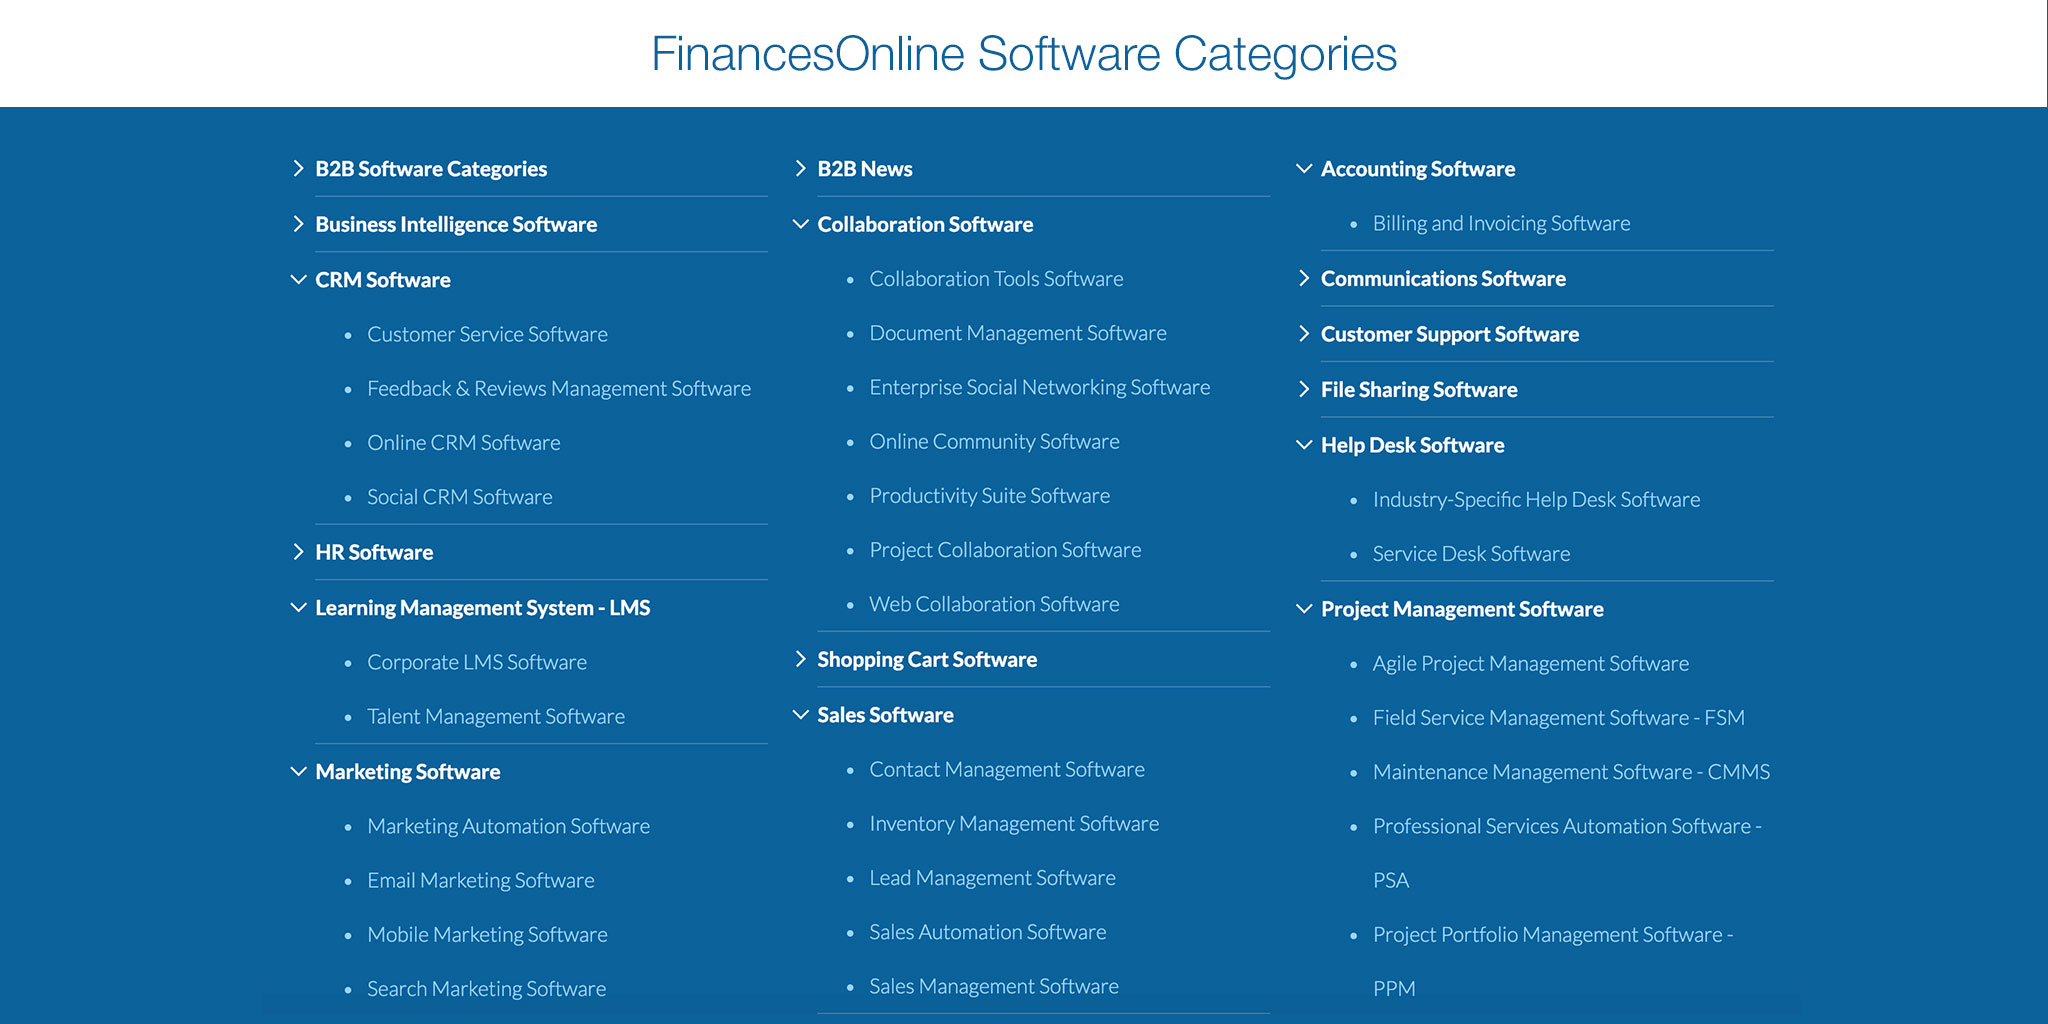 Finances Online software categories